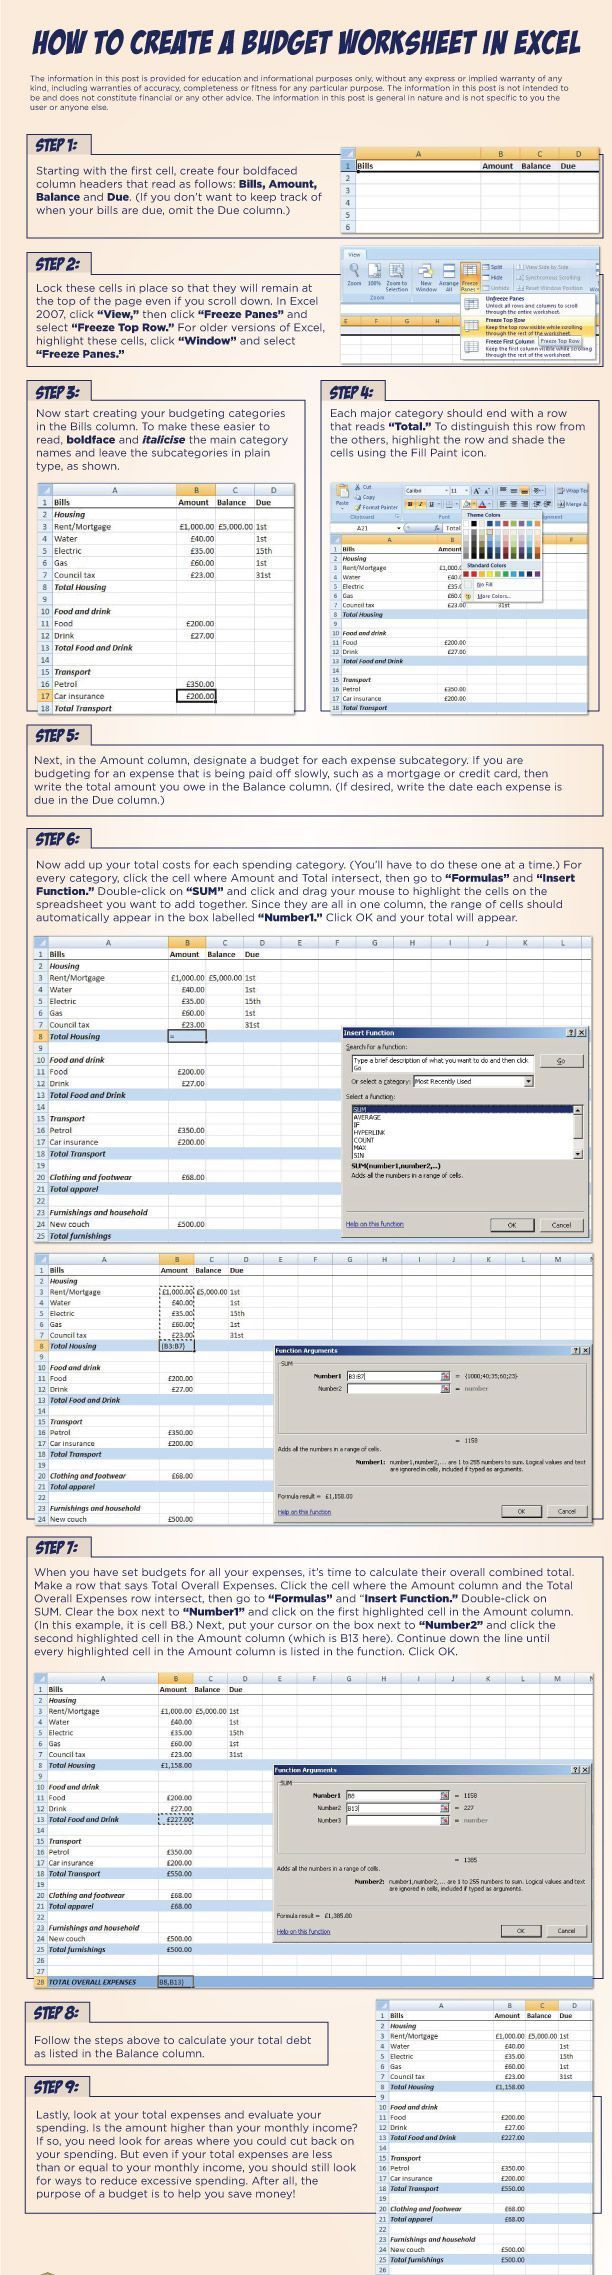 Le Rn How To Cre Te Budget W Ksheet Excel Step By Step